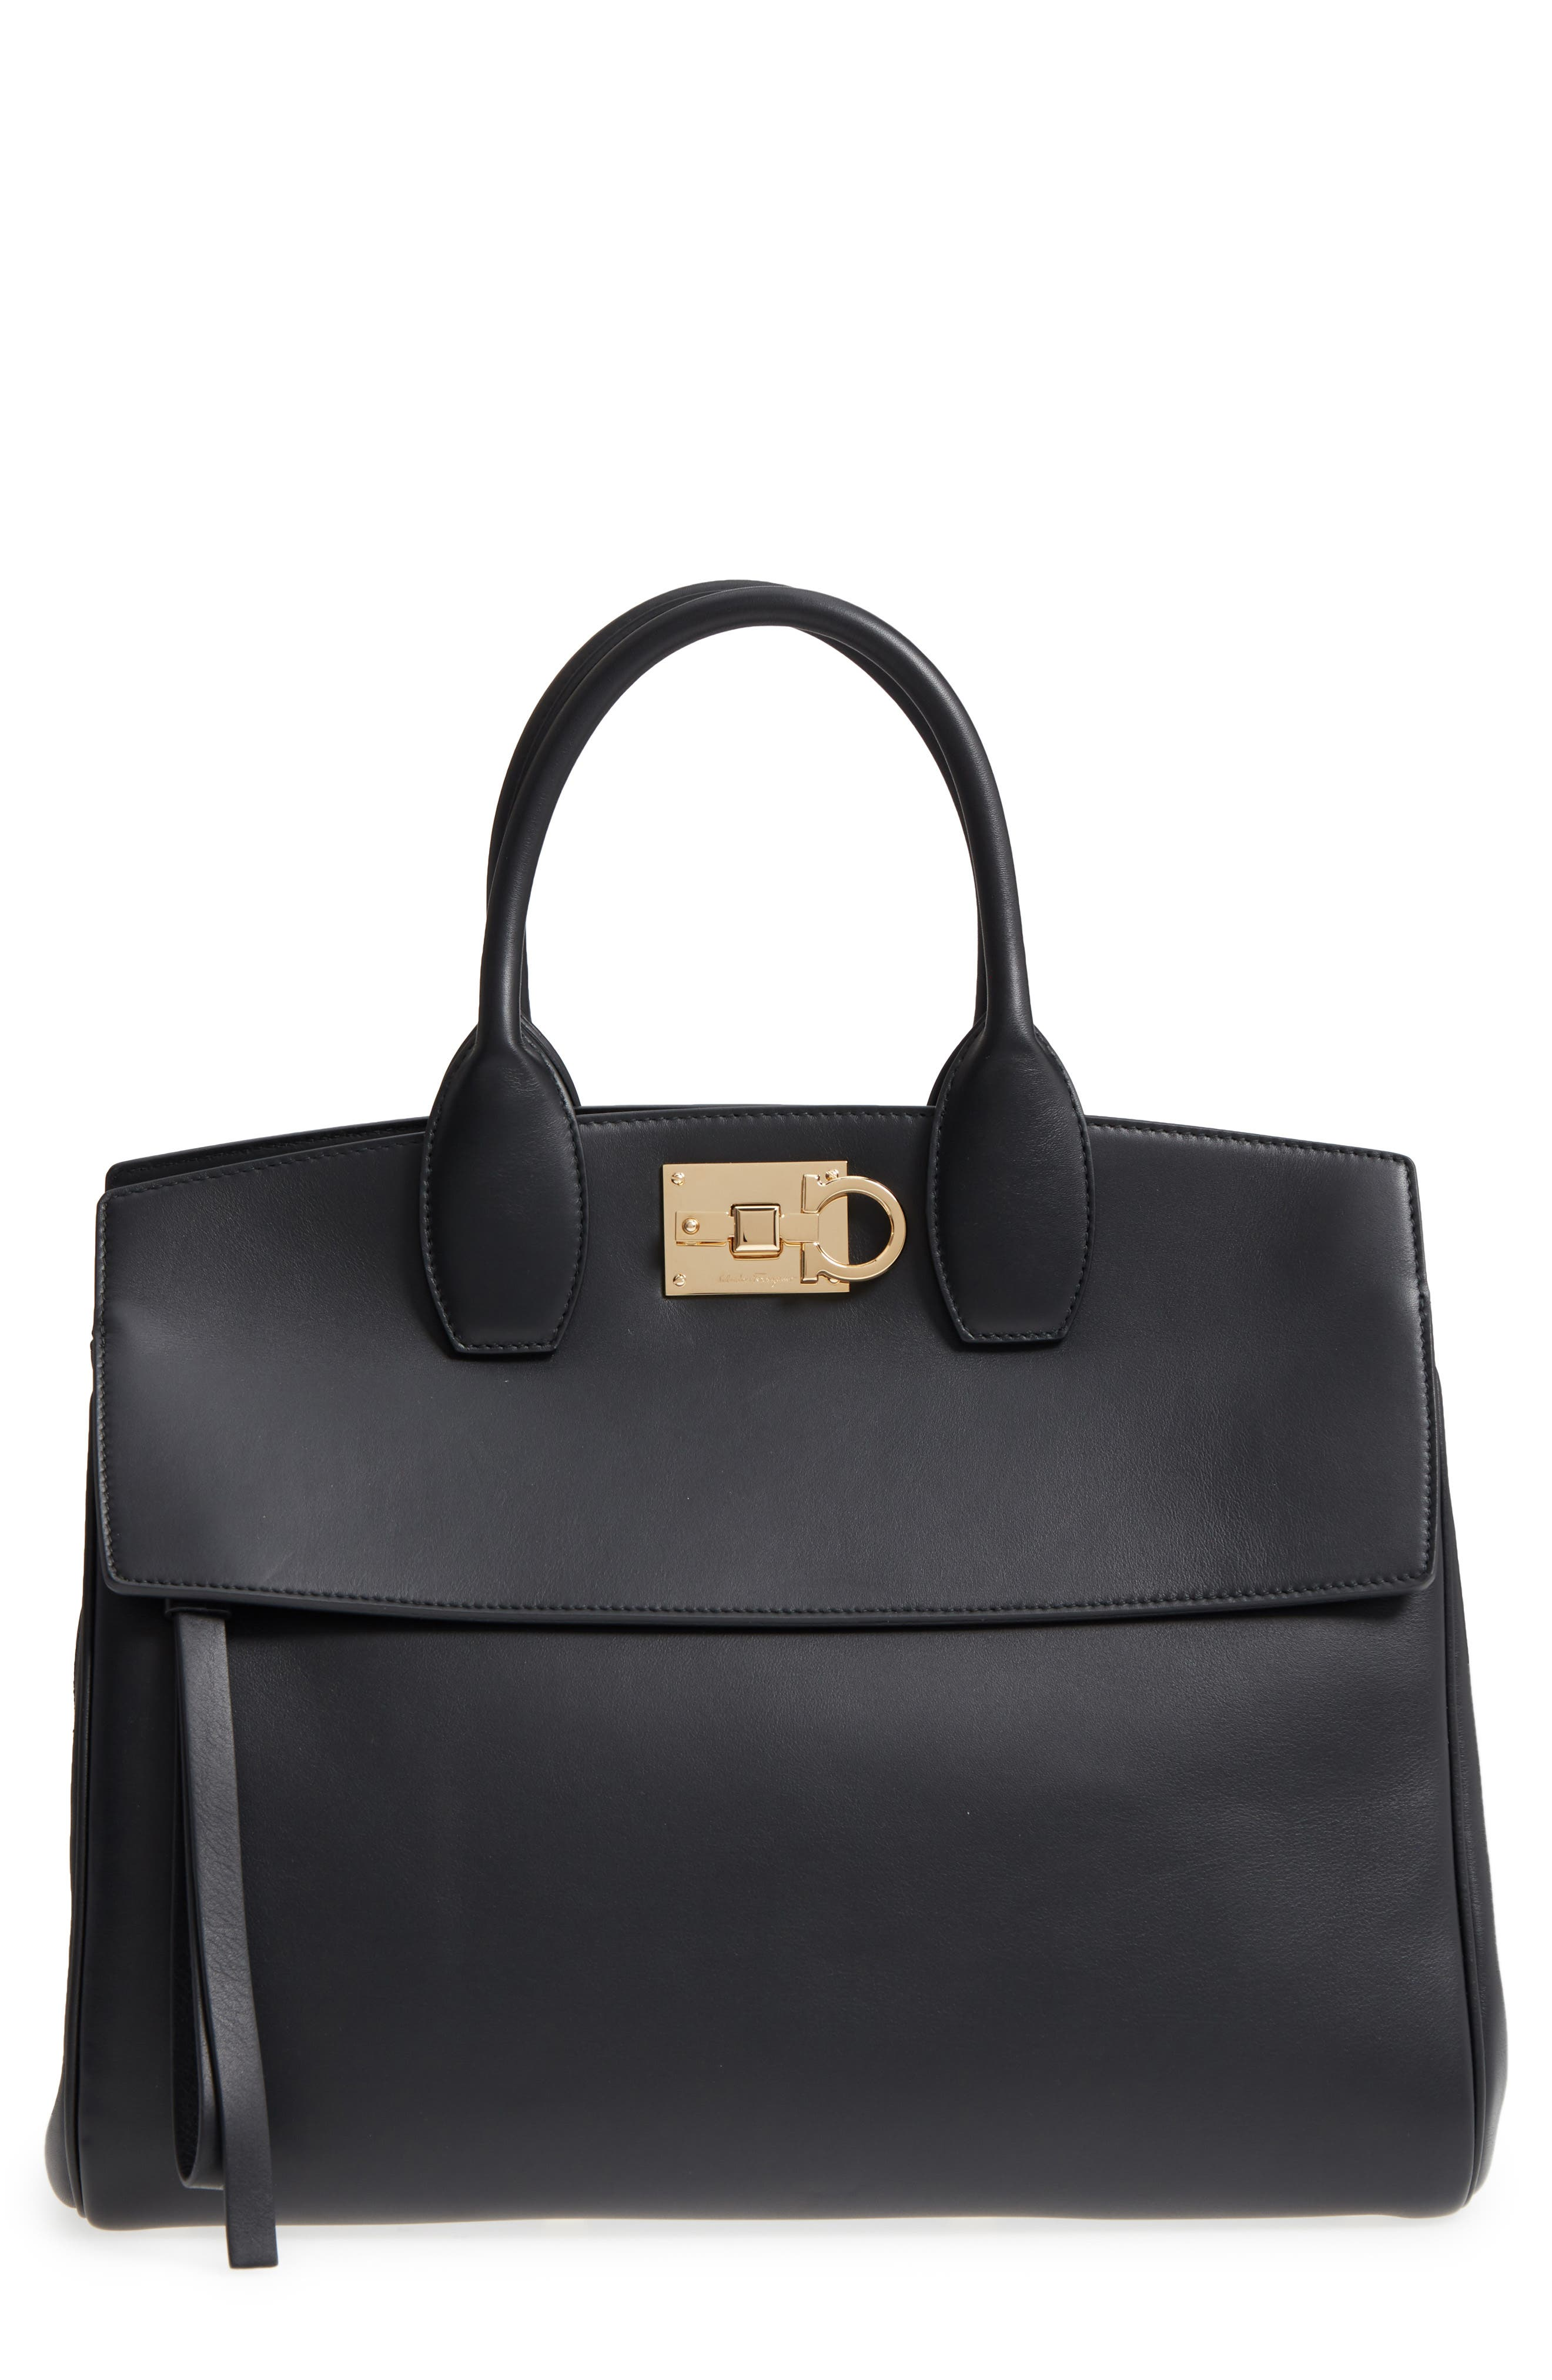 Salvatore Ferragamo Studio Calfskin Leather Top Handle Tote